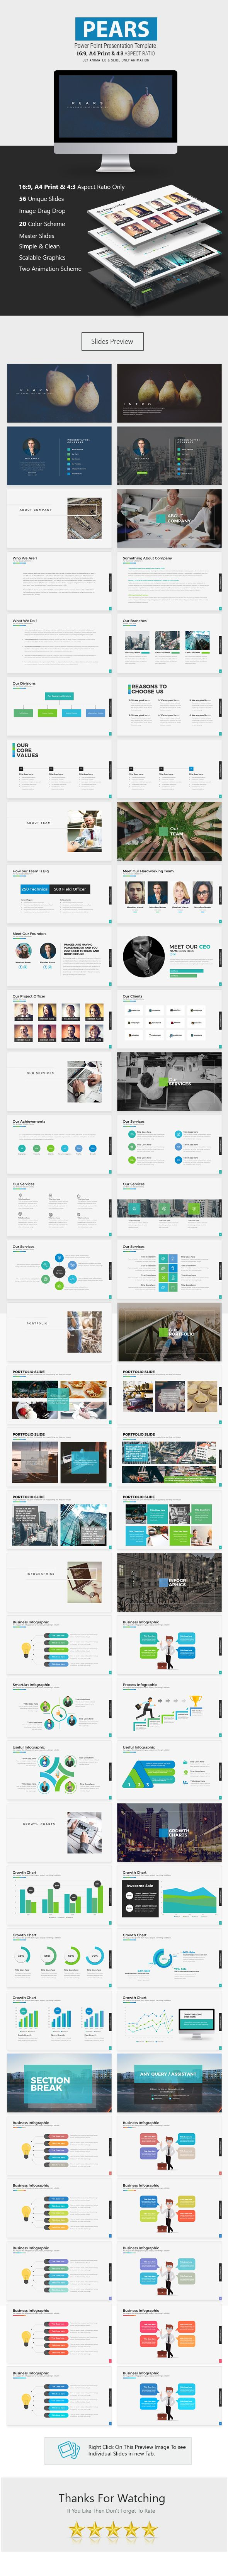 Pears Power Point Presentation - Business #PowerPoint Templates